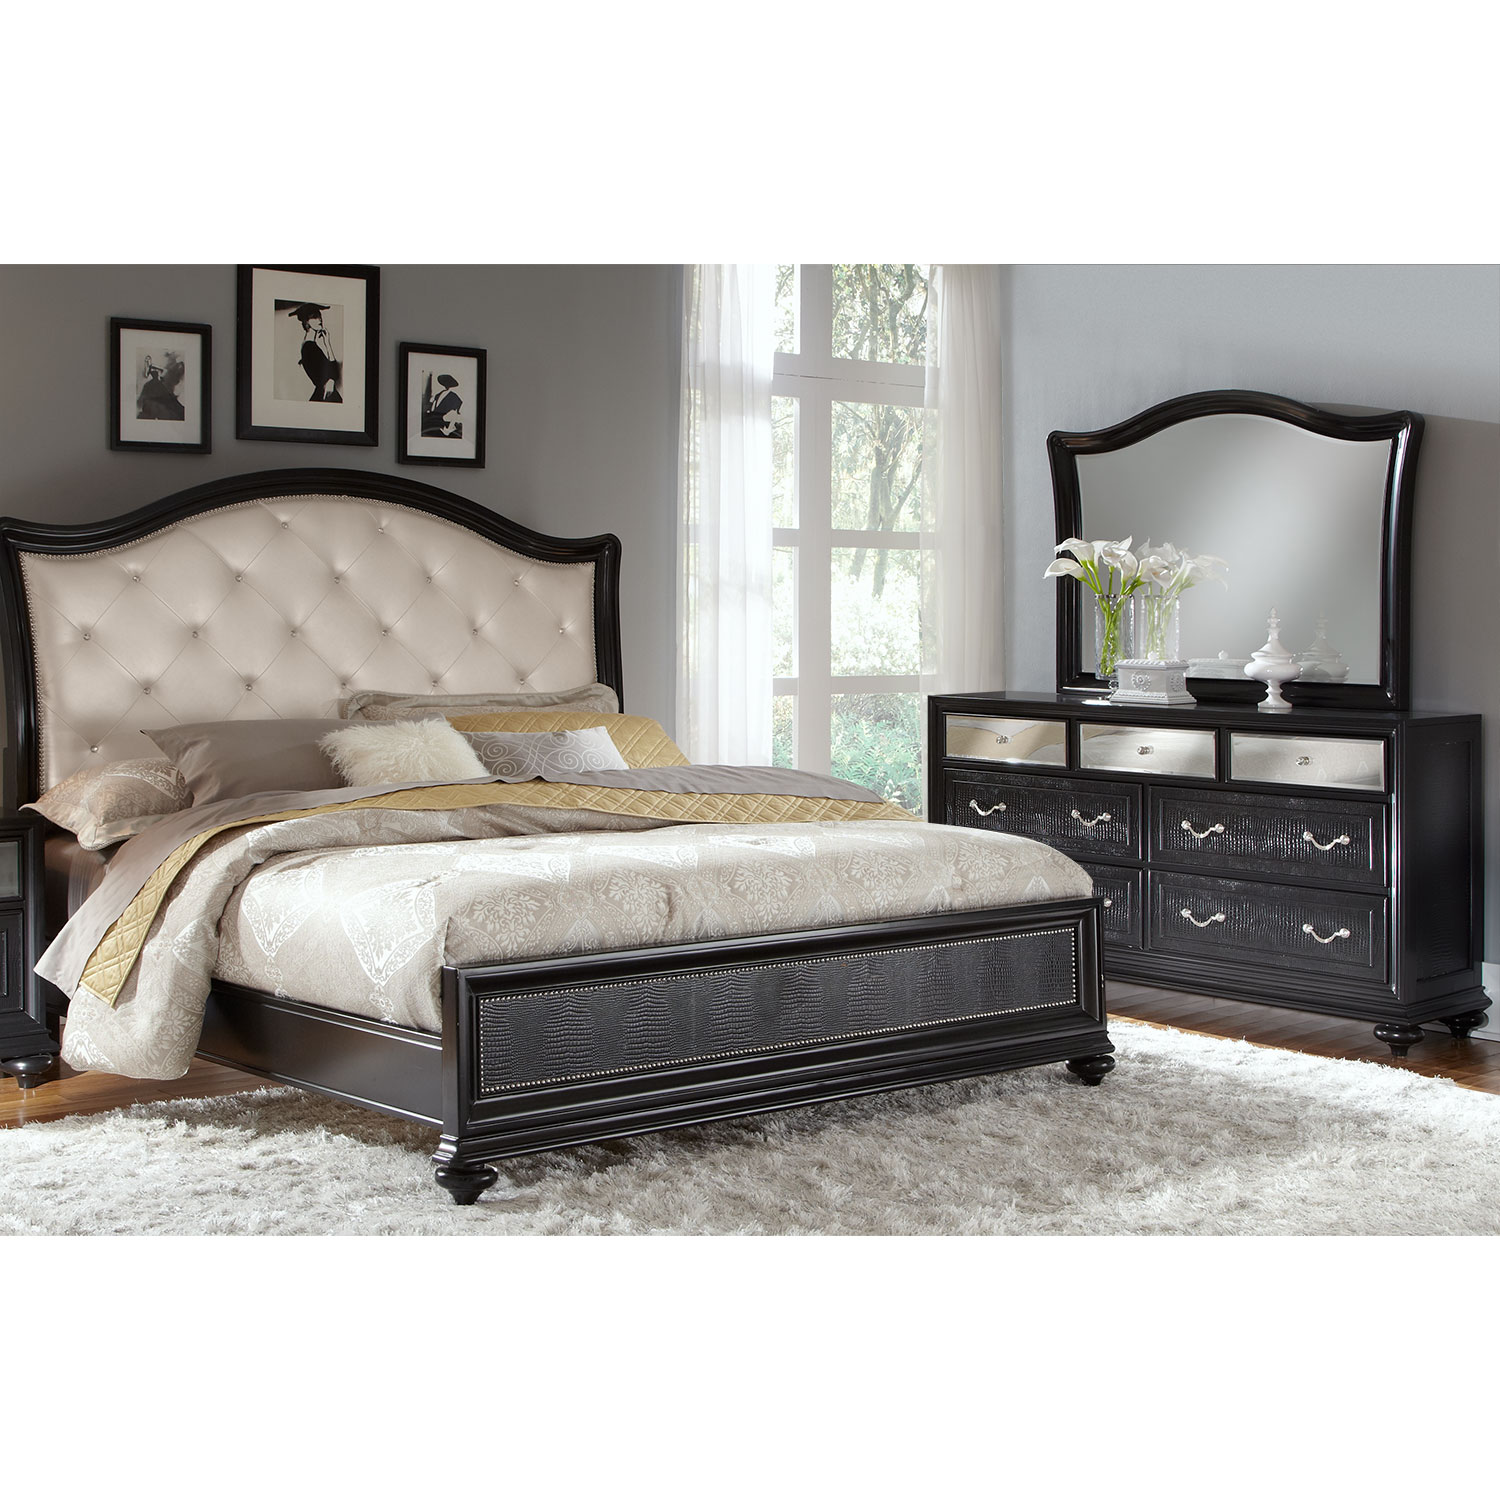 Marilyn 5-Piece King Bedroom Set - Ebony | American Signature ...